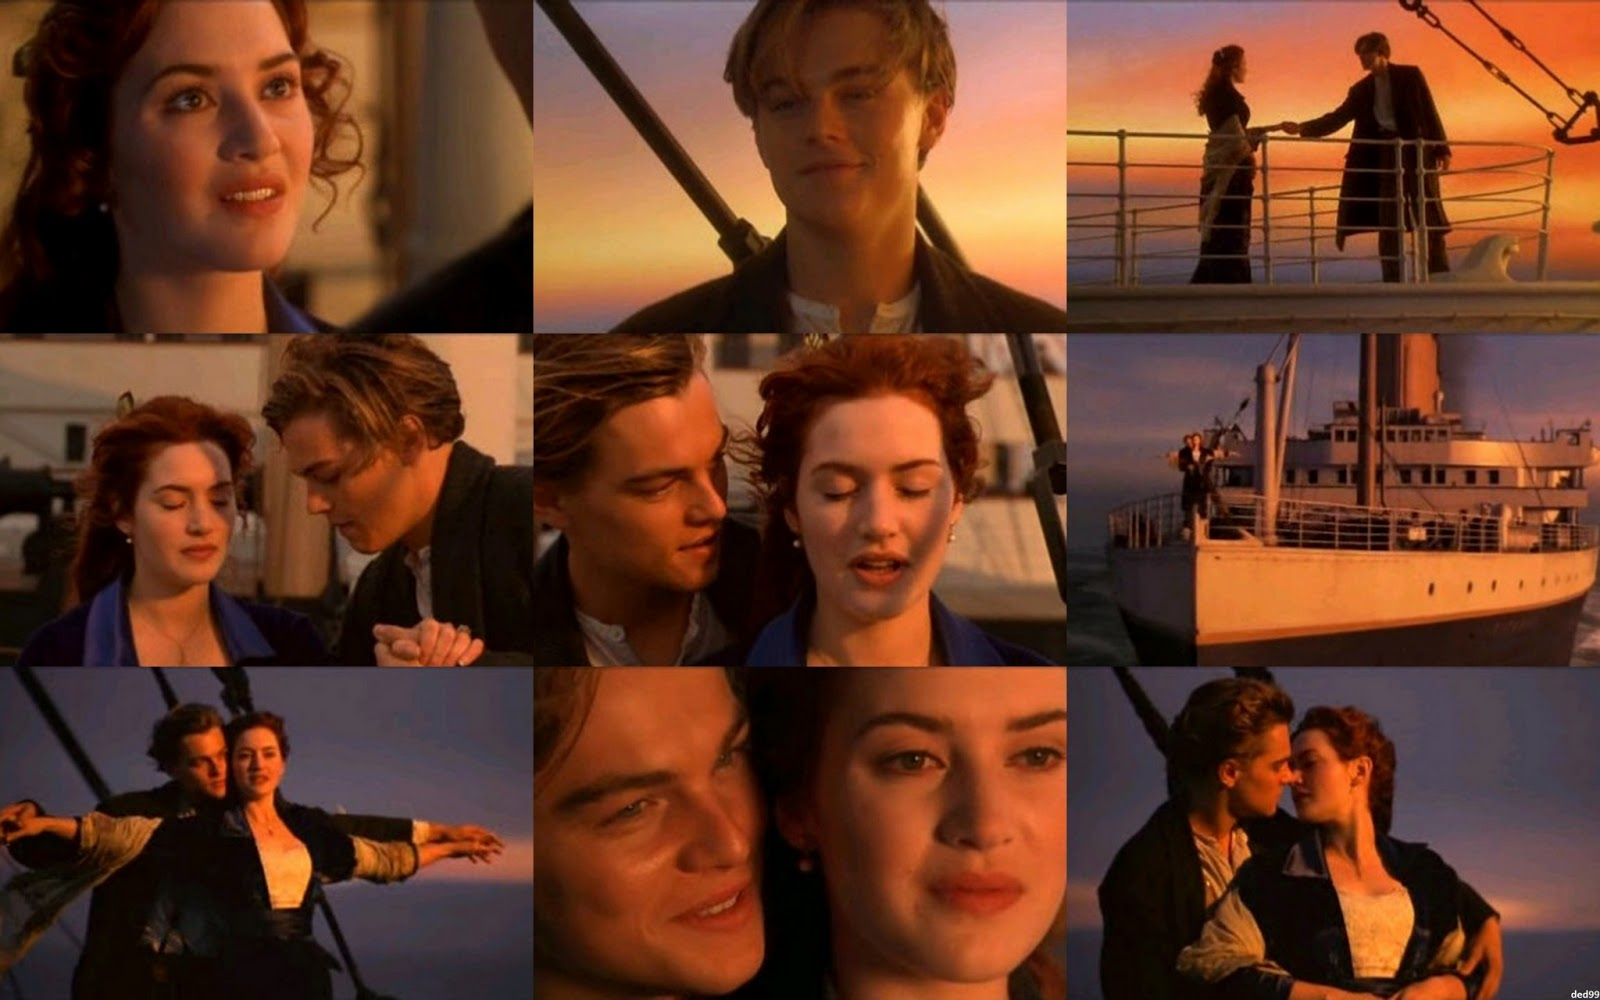 jack and rose - titanic 3d